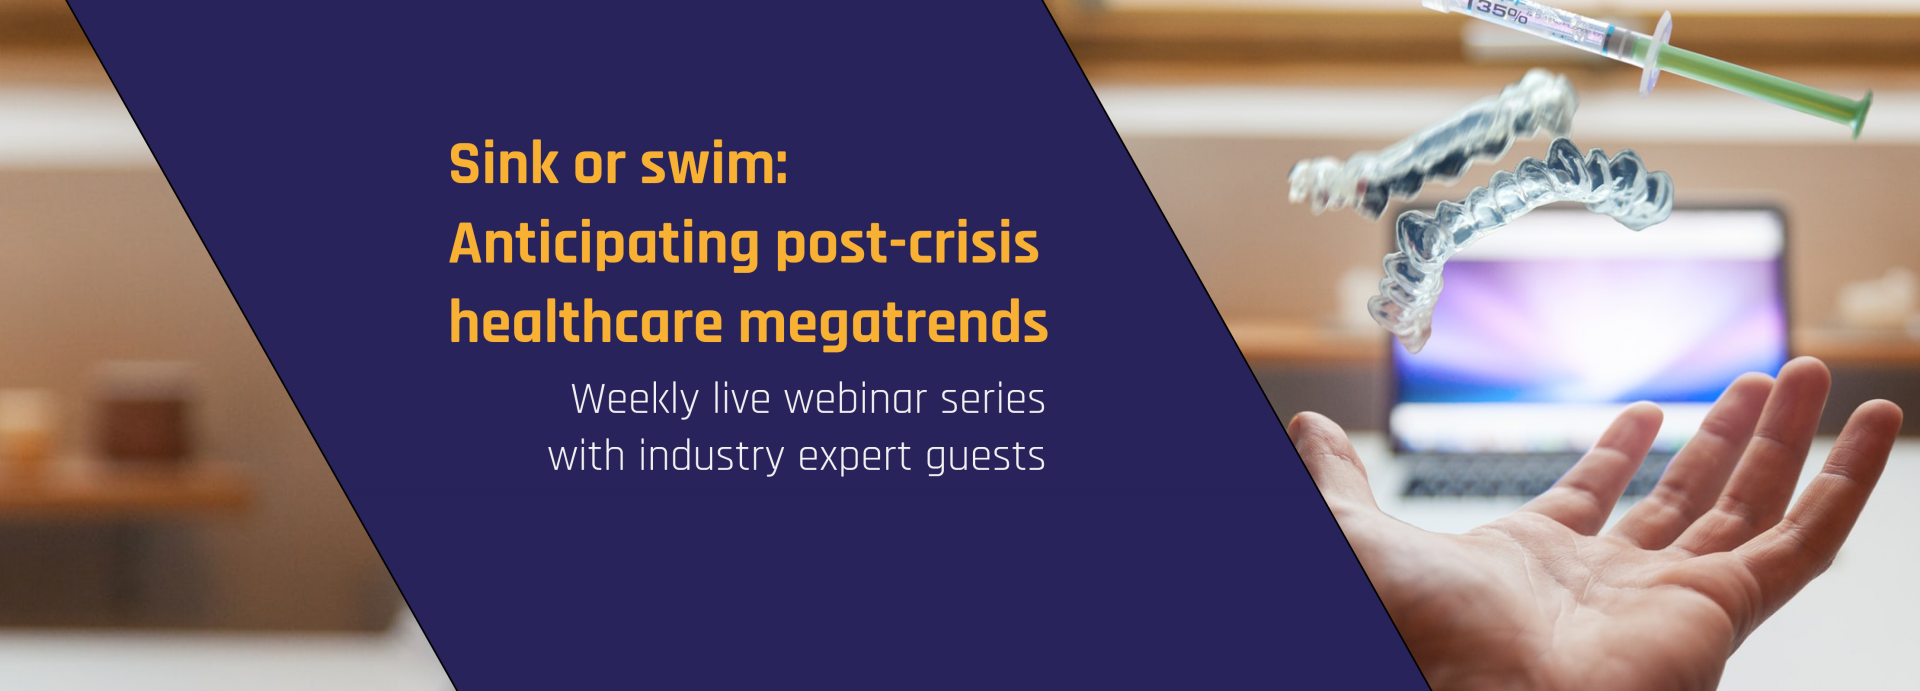 Sink or Swim: Anticipating post-crisis healthcare megatrends webinar